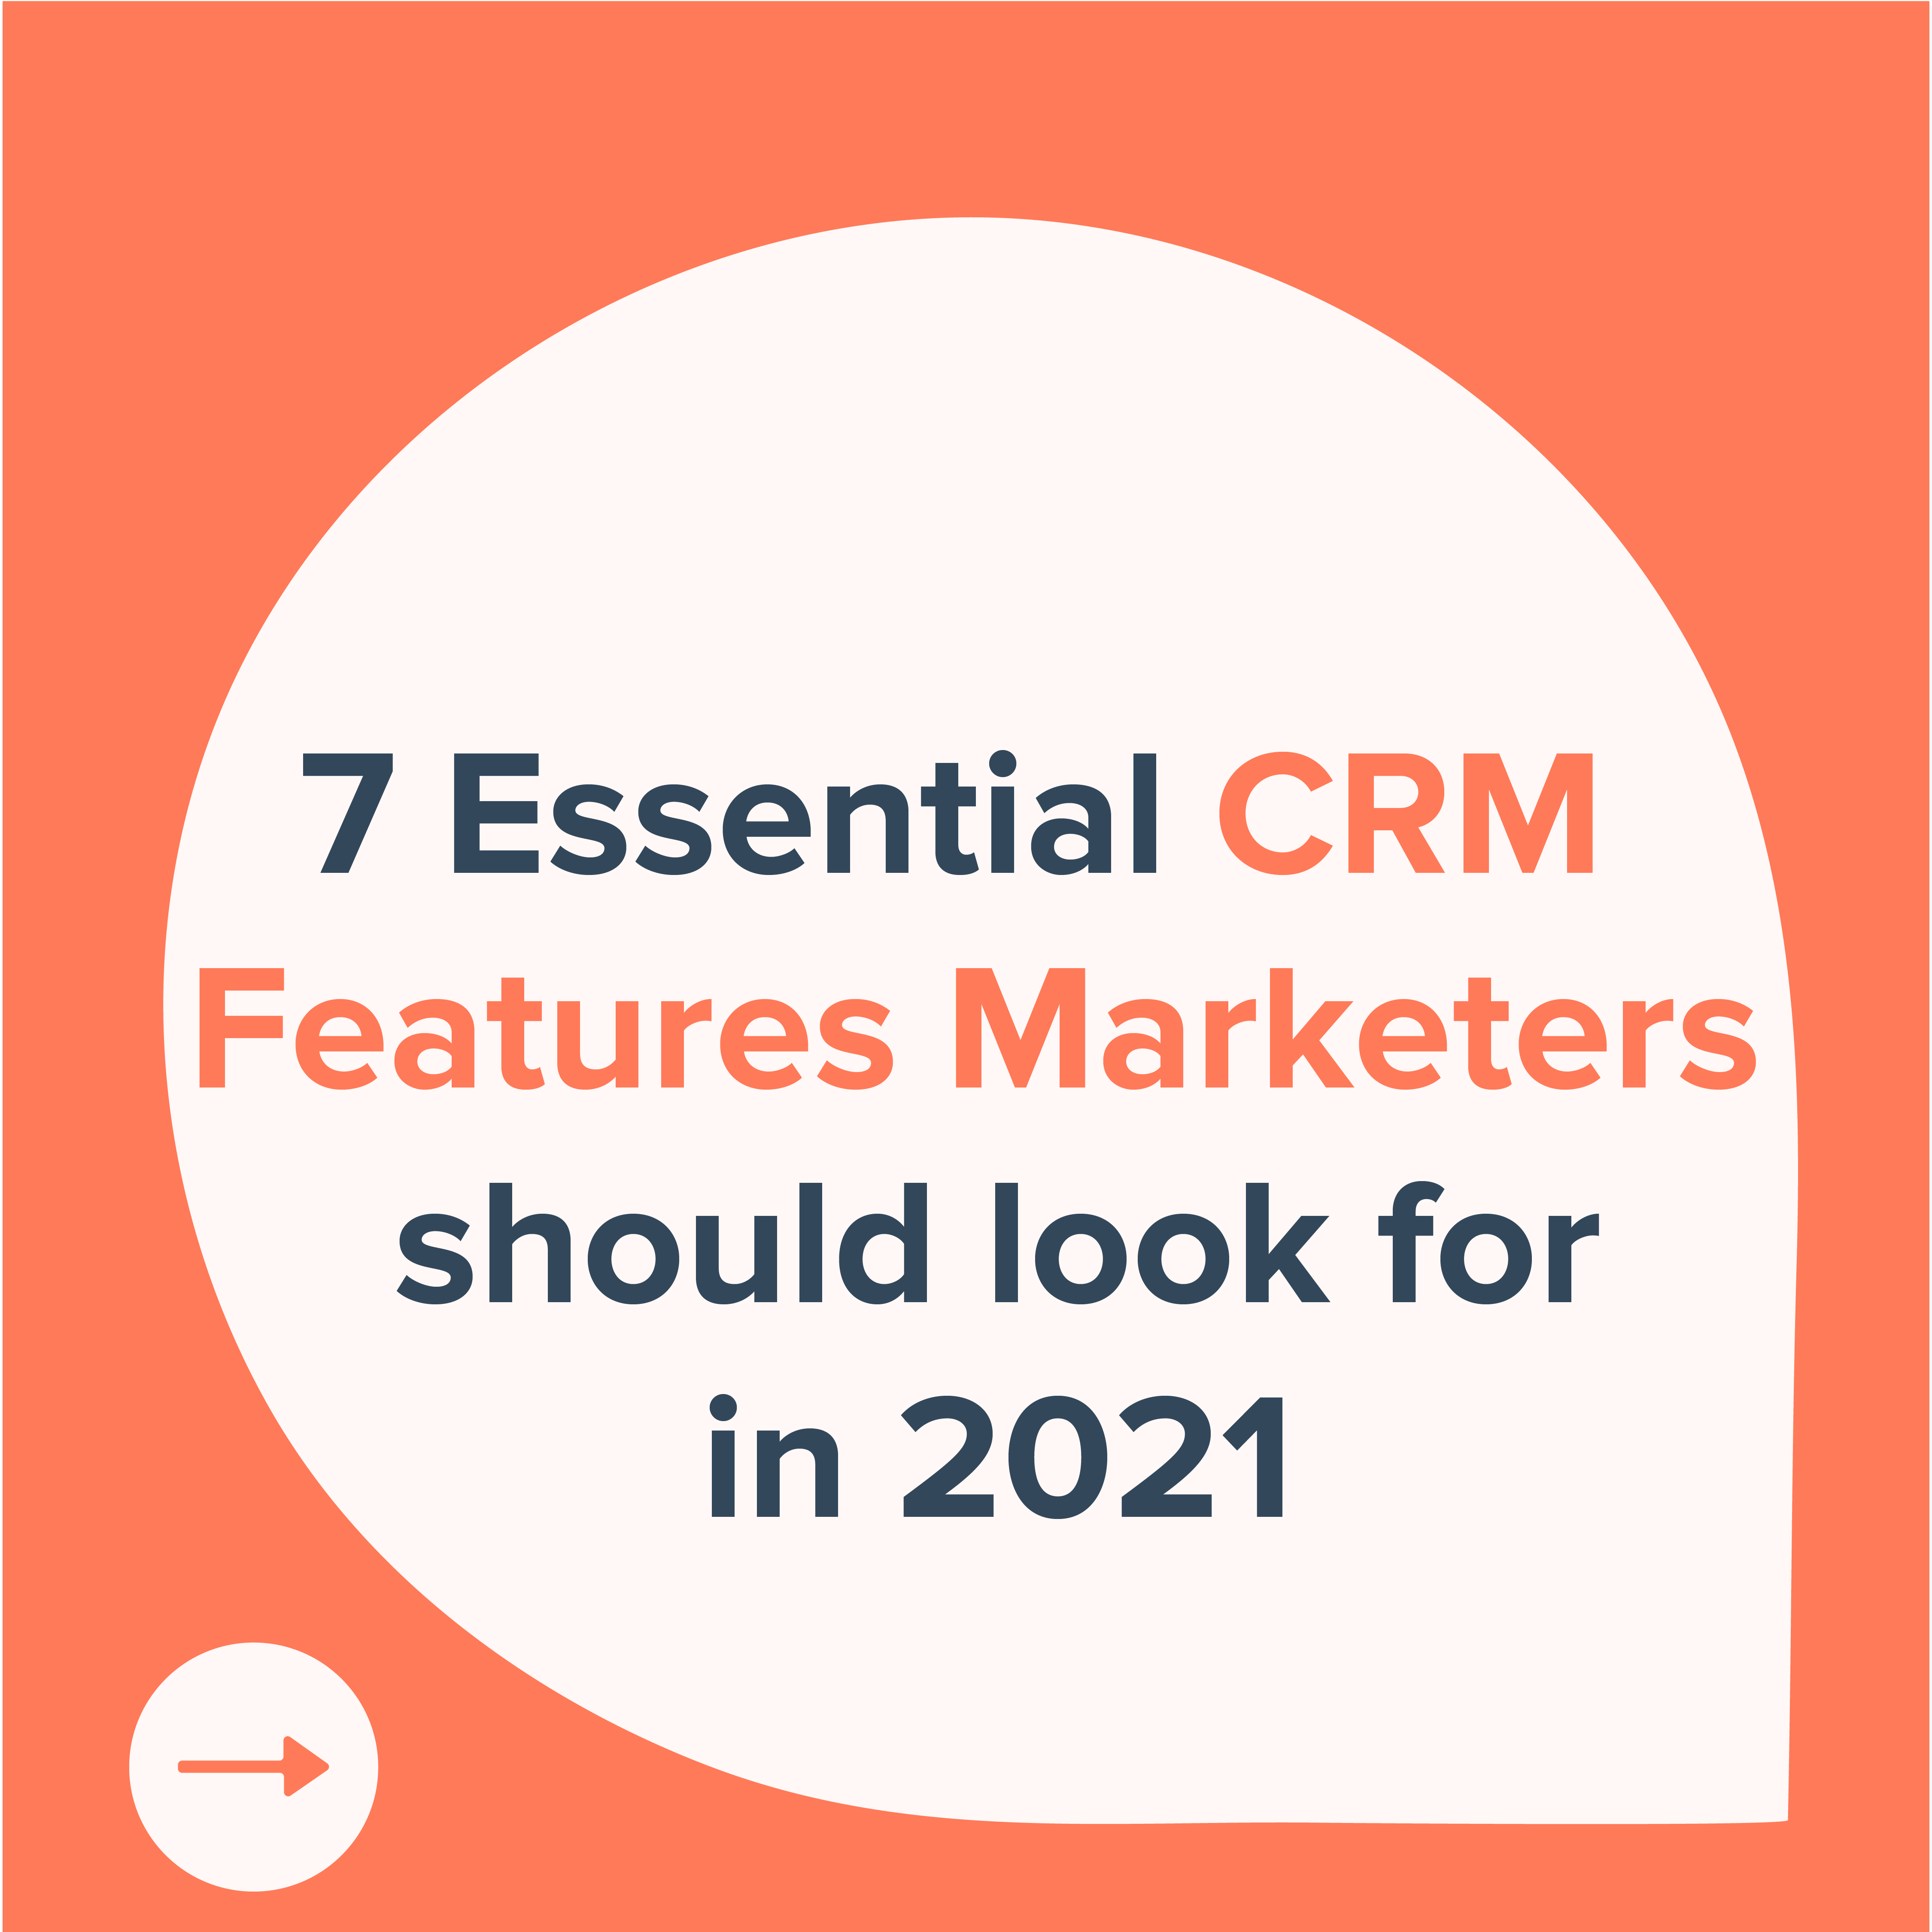 7 essential CRM features marketers should look for 2021-01